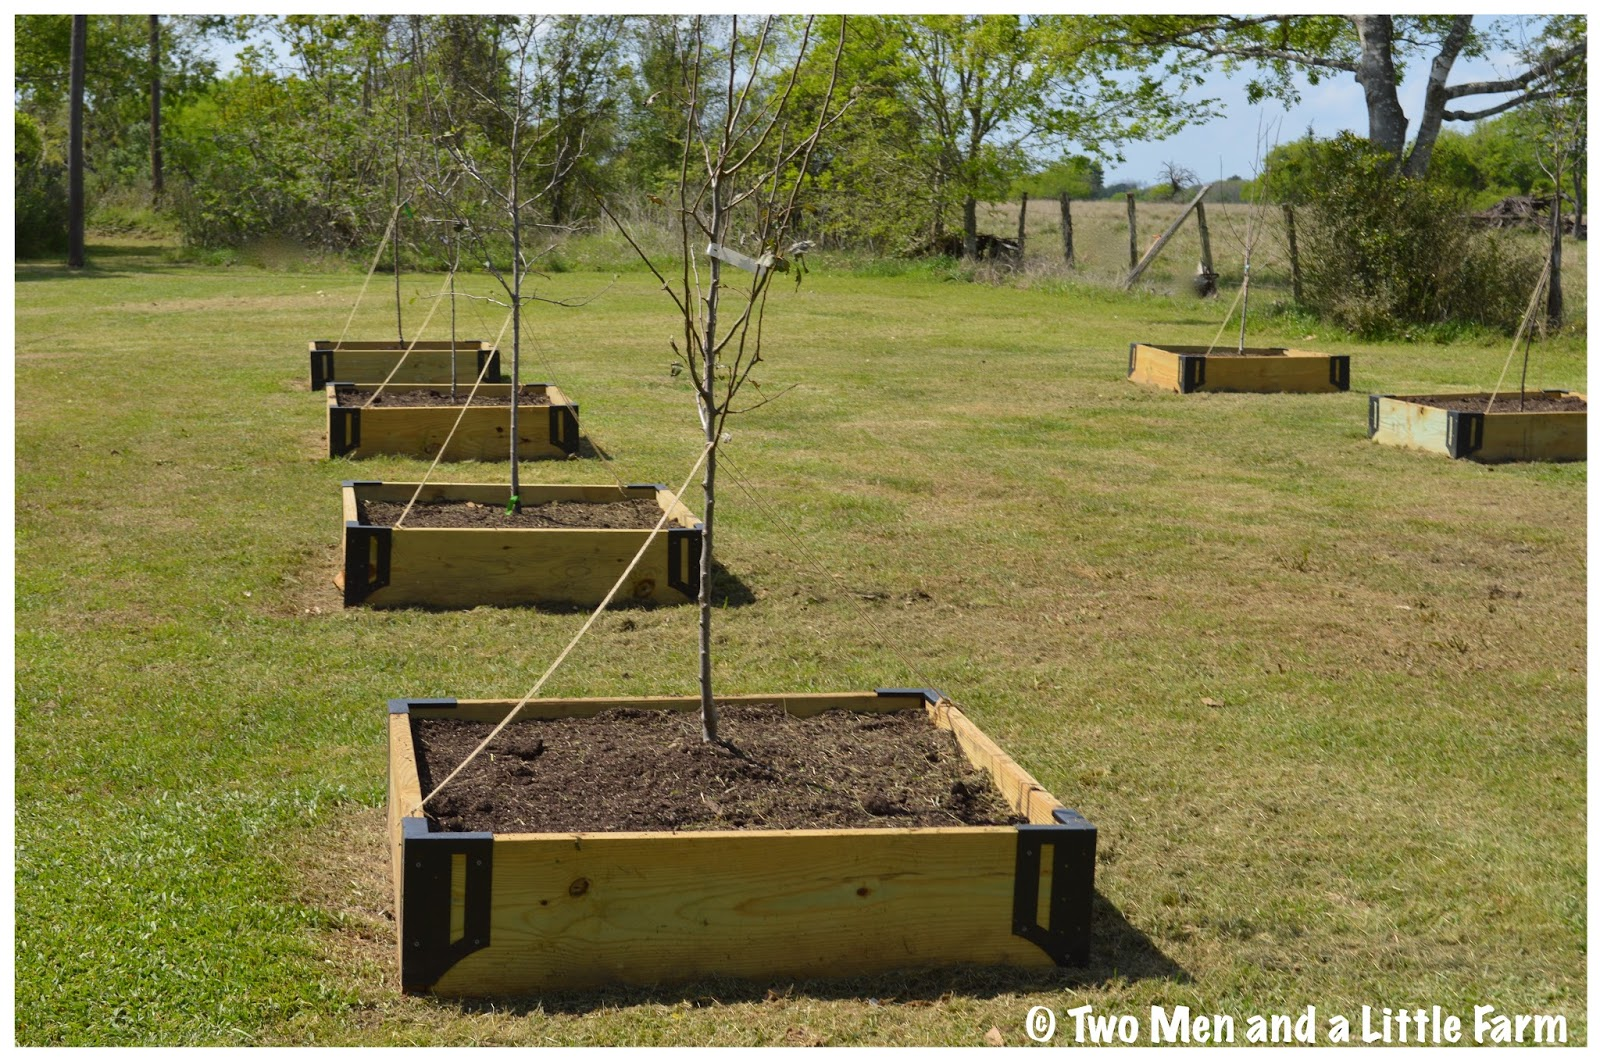 Two Men and a Little Farm RAISED BED ORCHARD